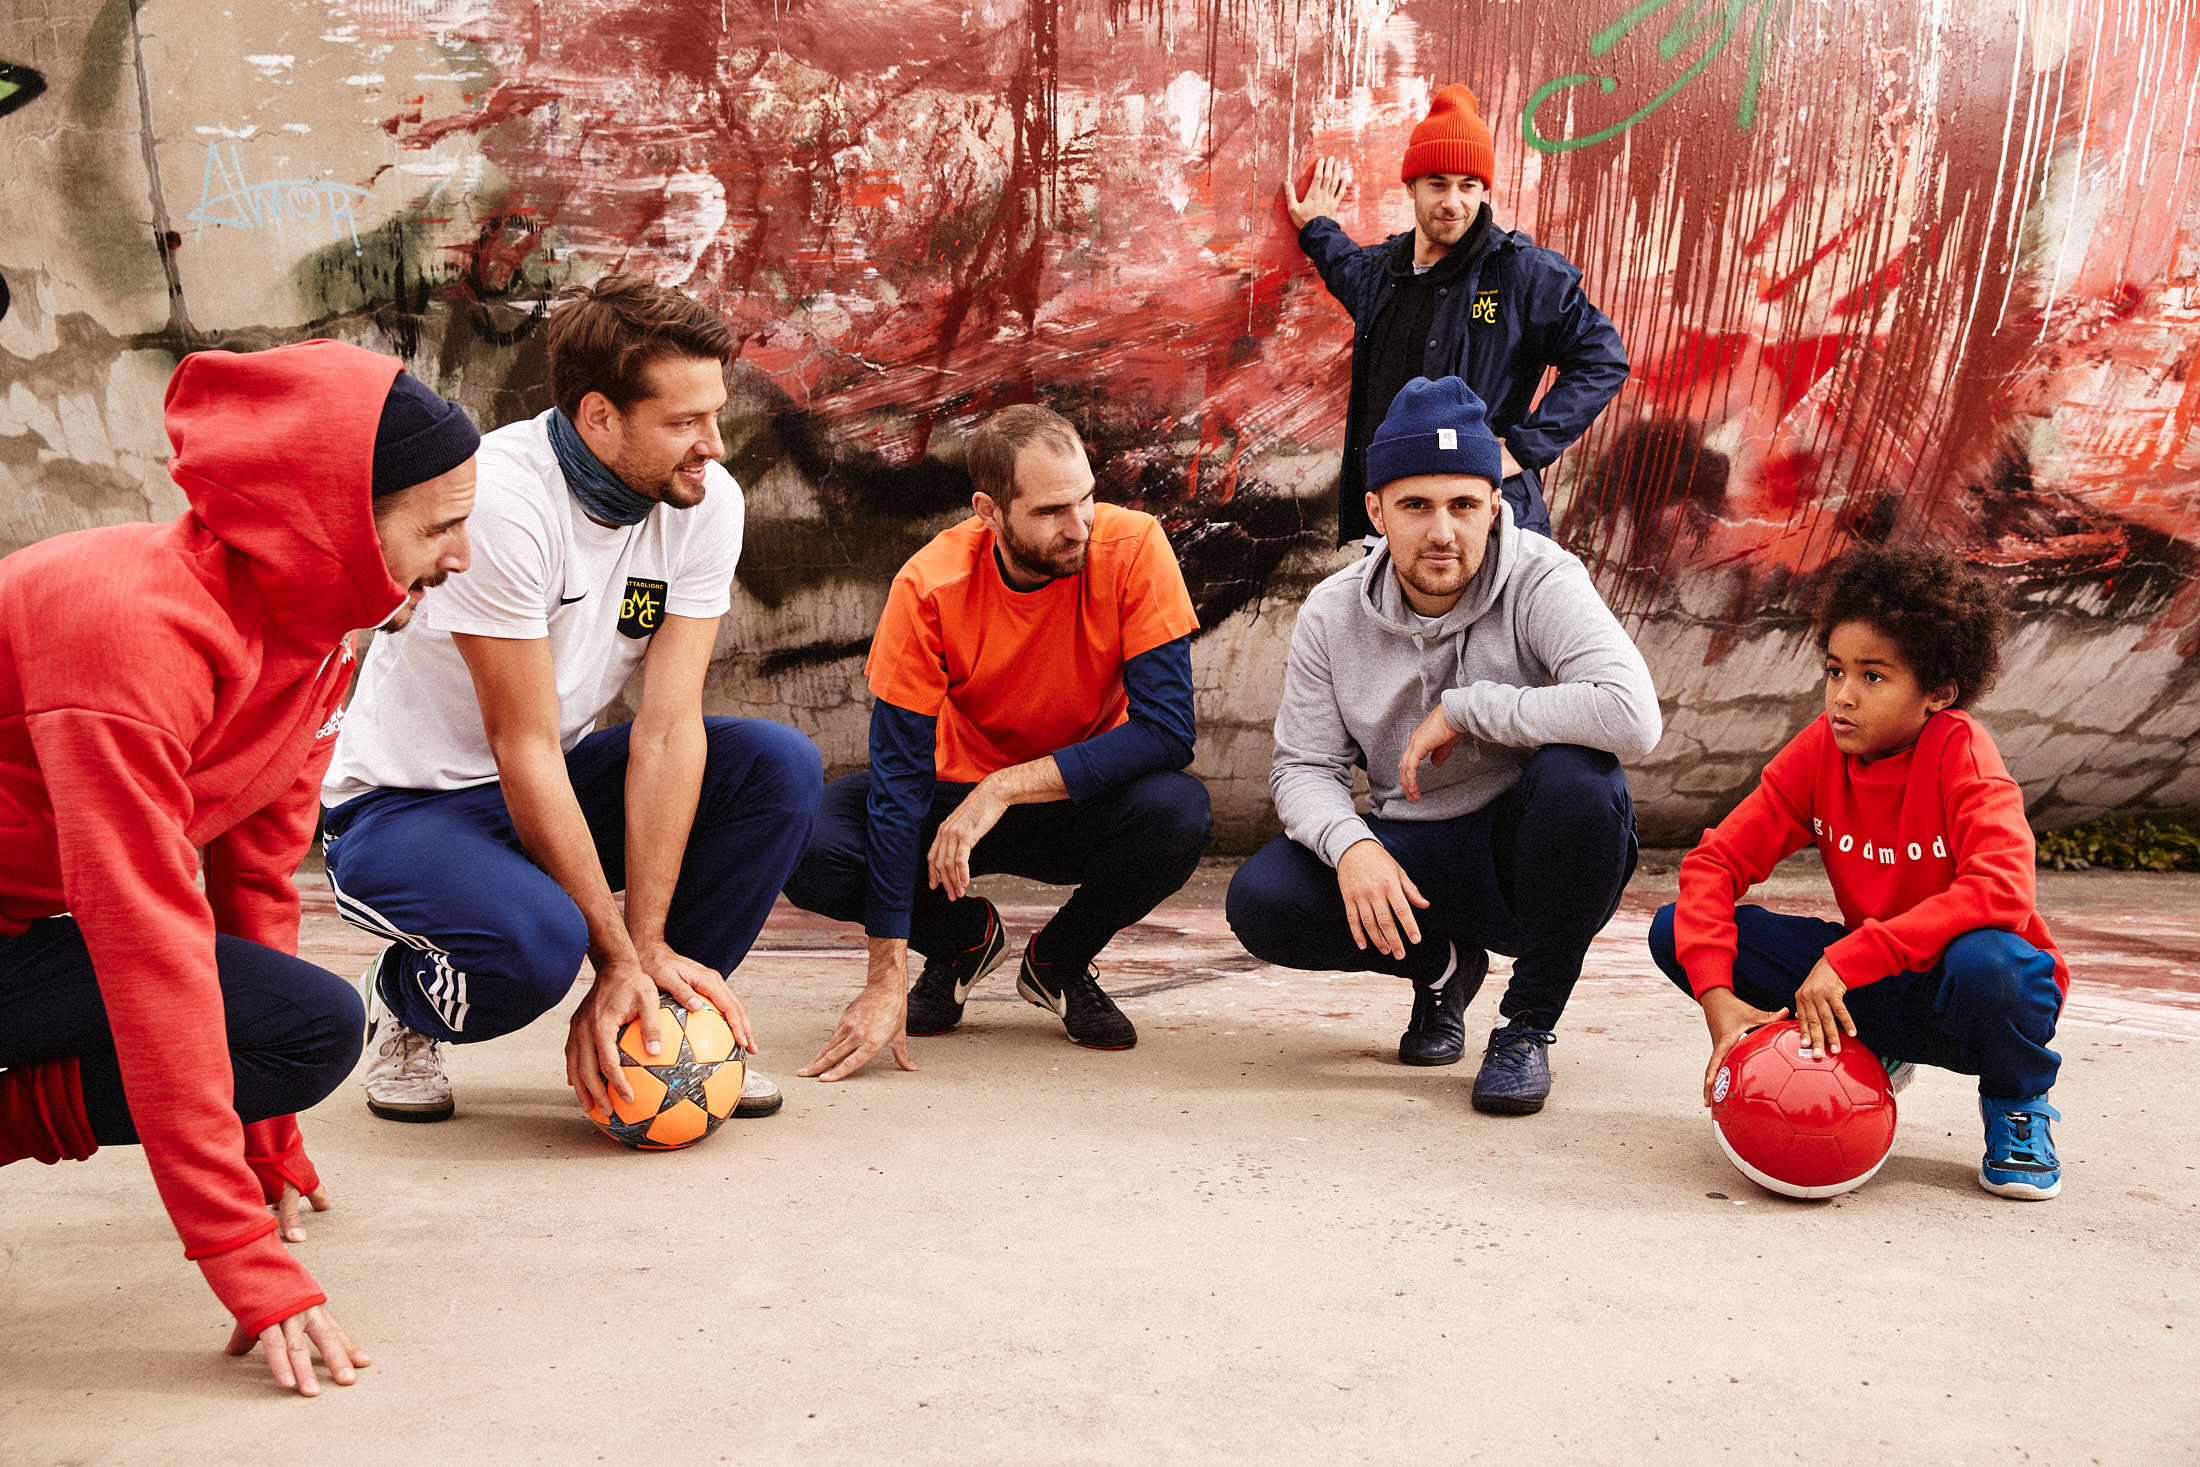 Leopold Fiala Photography VW – we drive football